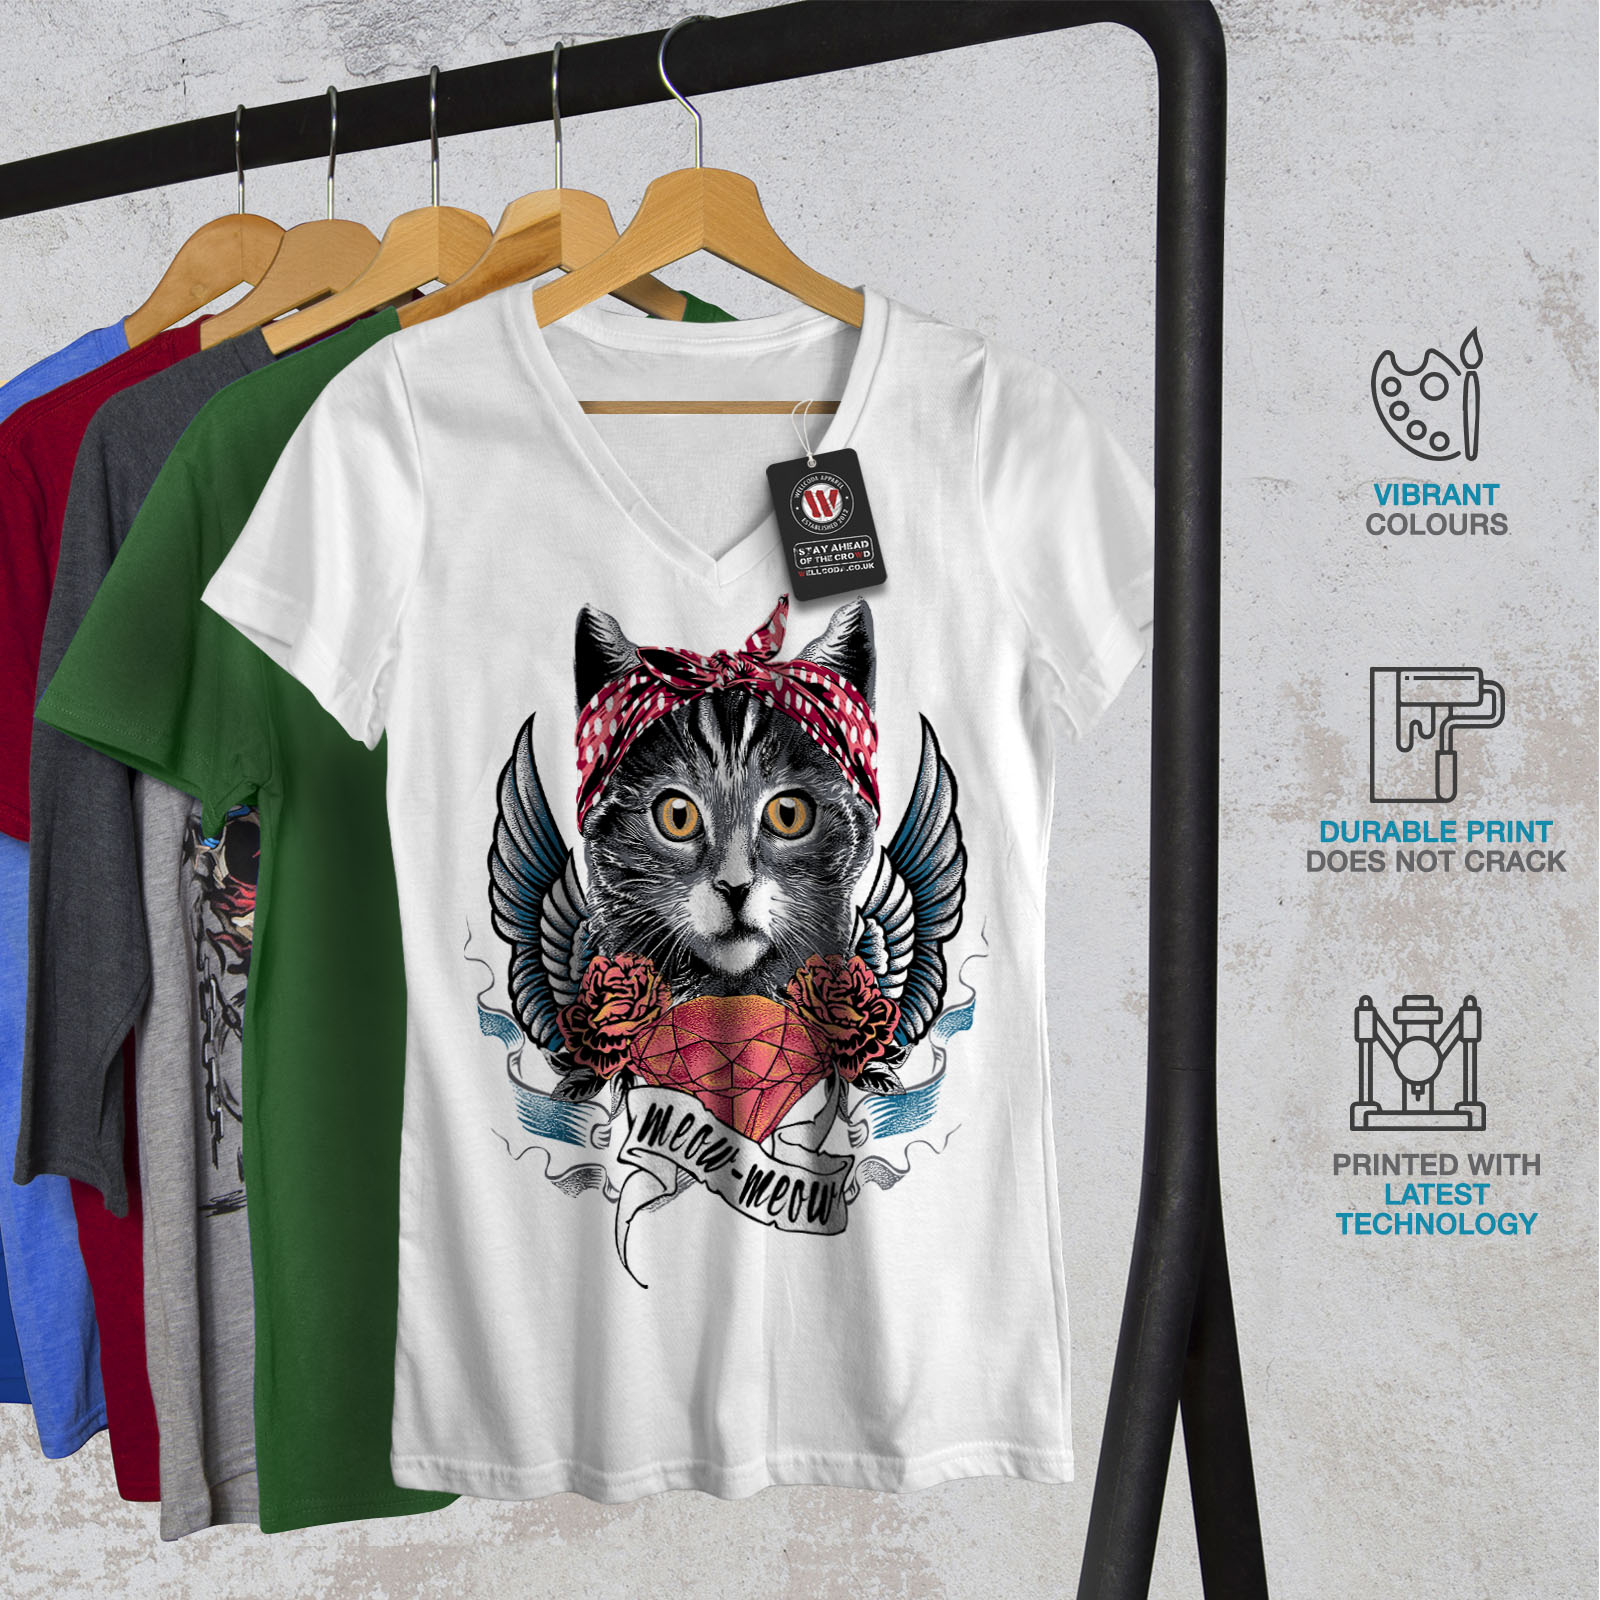 Wellcoda-Mignon-Coeur-ailes-meow-cat-femme-t-shirt-col-V-conception-graphique-Tee miniature 8